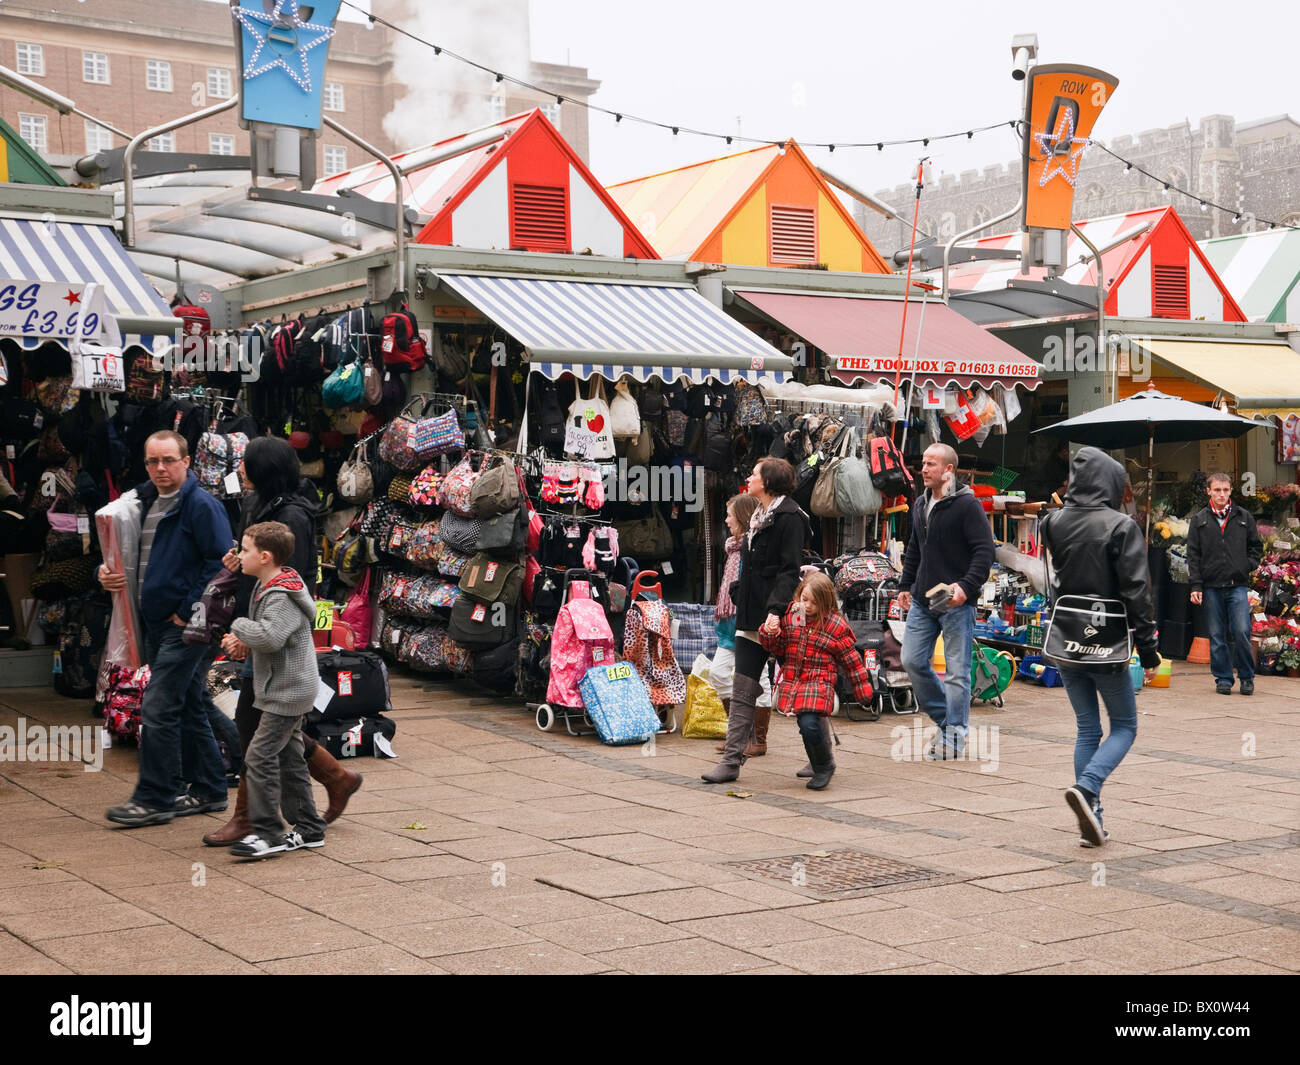 Norwich, Norfolk, England, UK, Europe. Shoppers shopping at the busy outdoor market - Stock Image